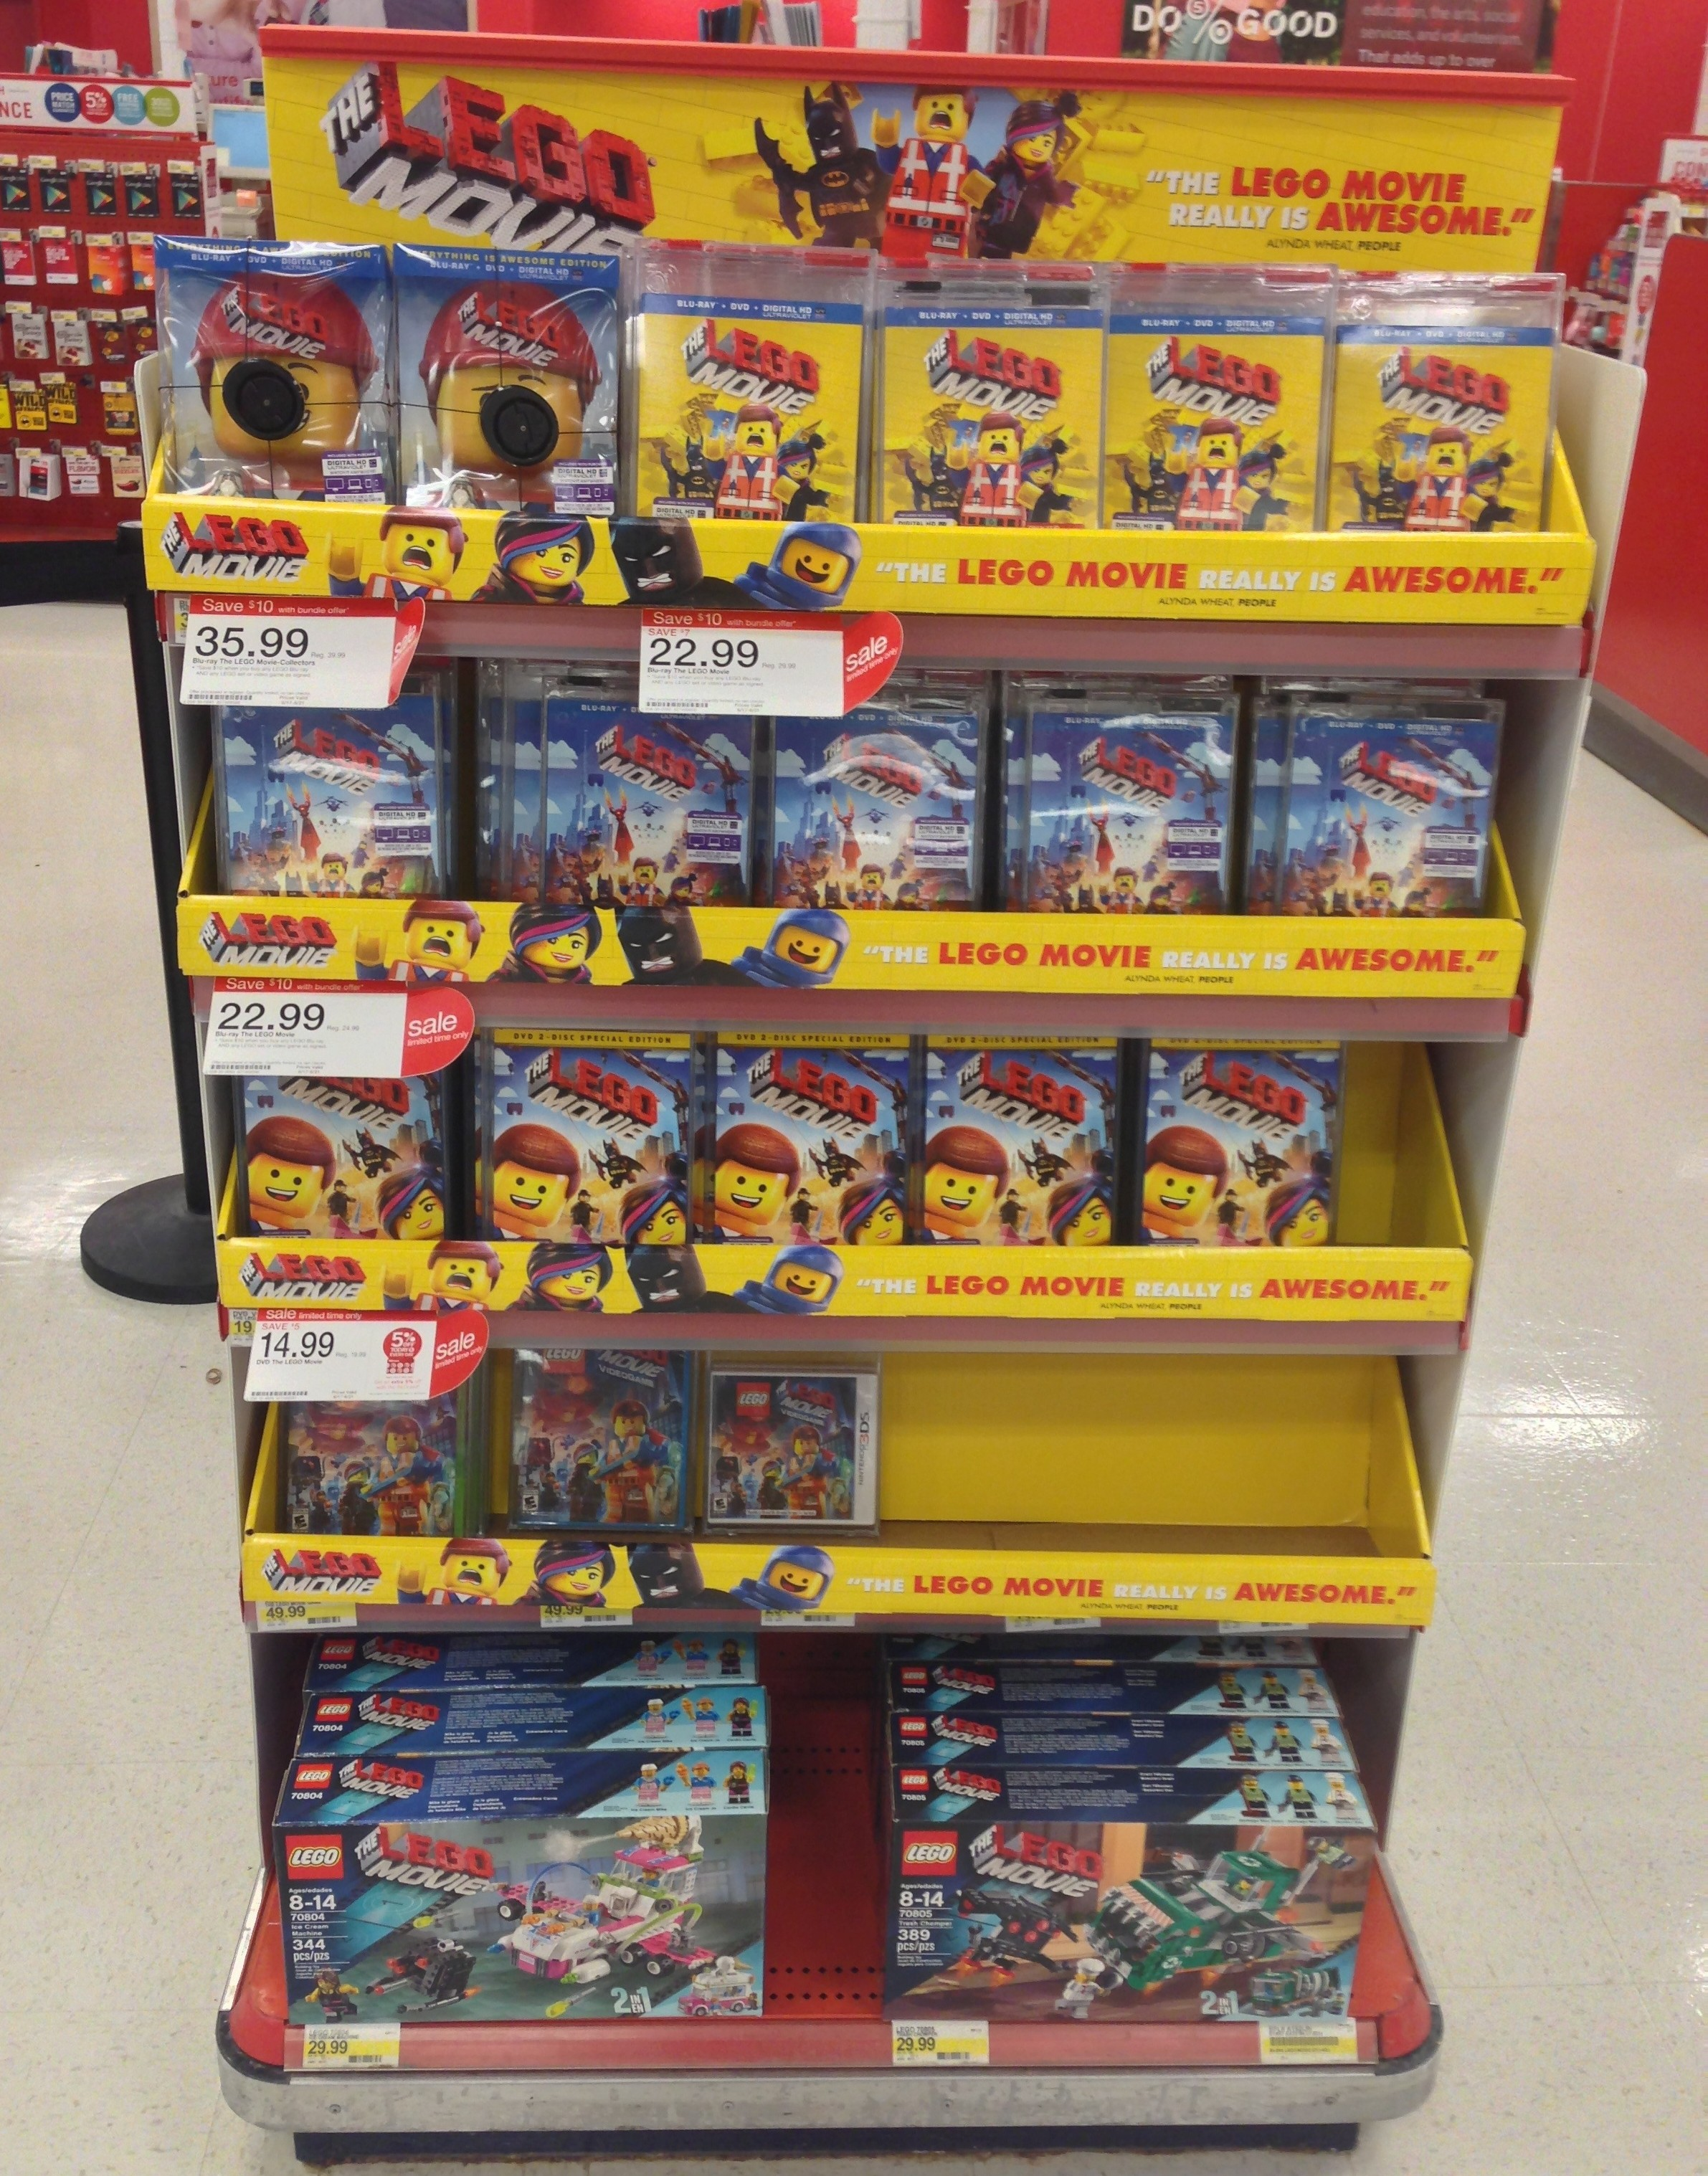 The Lego Movie Blu Ray Dvd Sets Released In Stores Bricks And Bloks